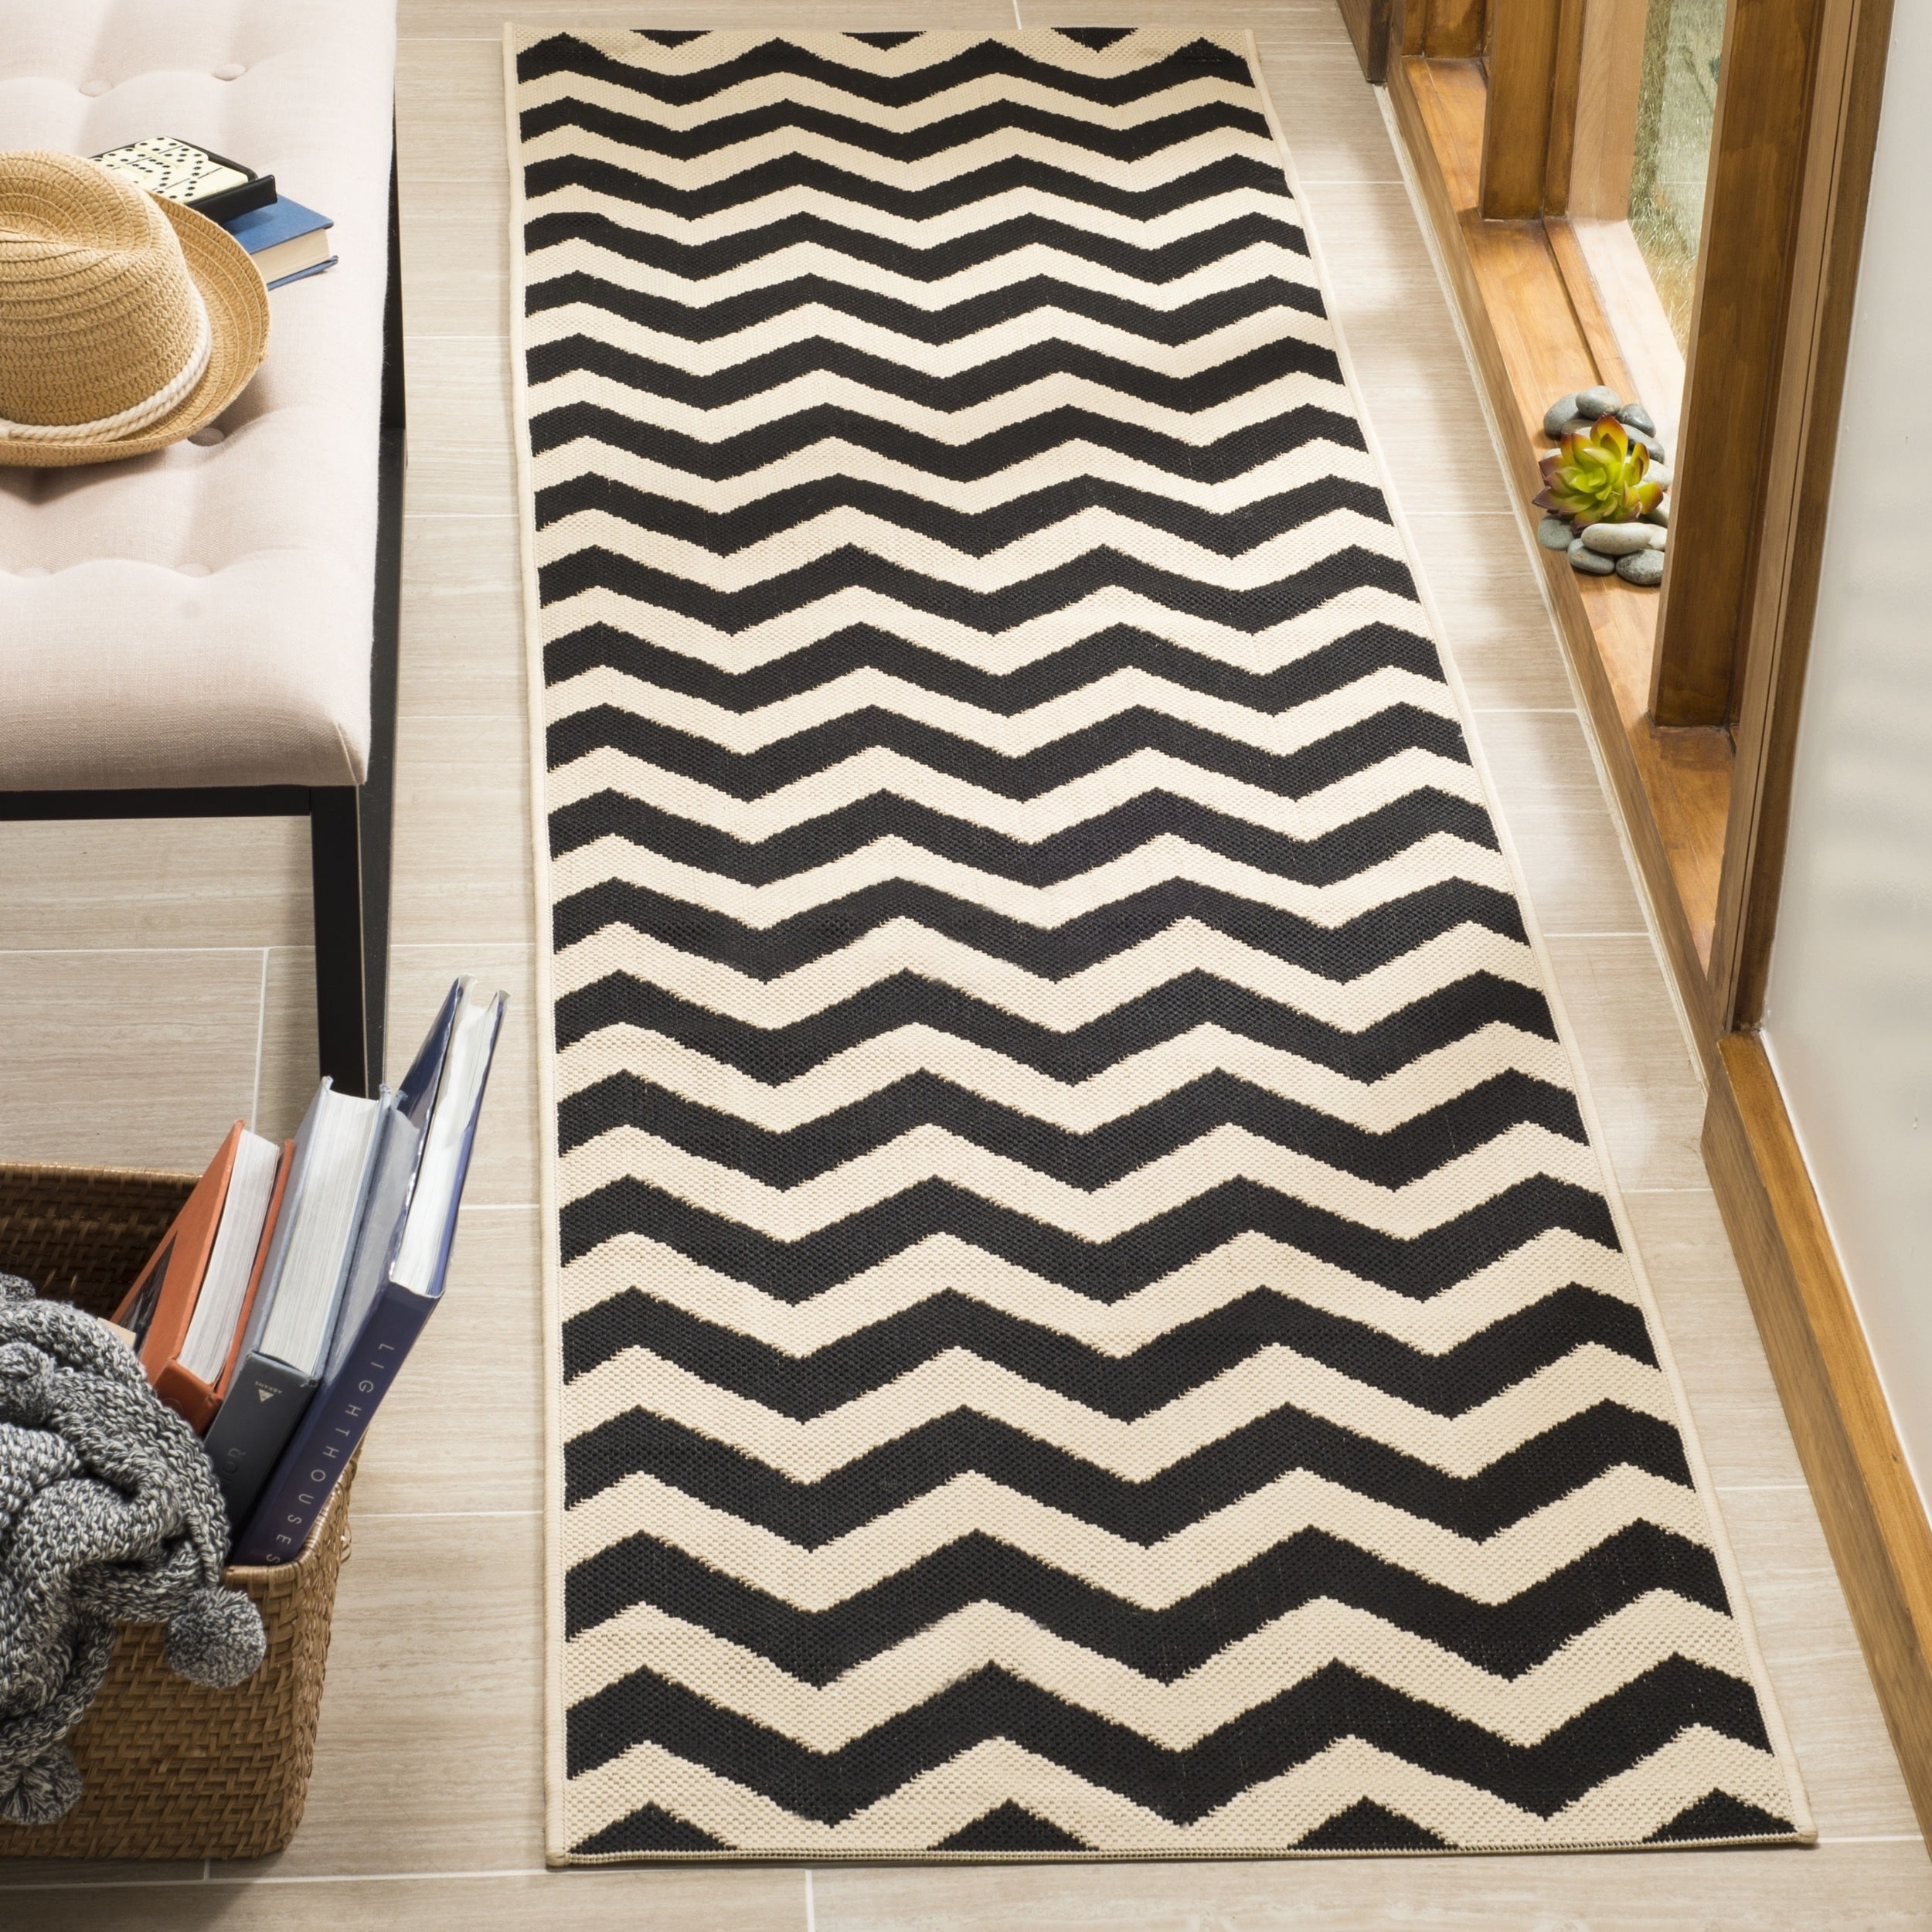 Safavieh Courtyard Safavieh Courtyard Chevron Black Beige Indoor Outdoor Rug